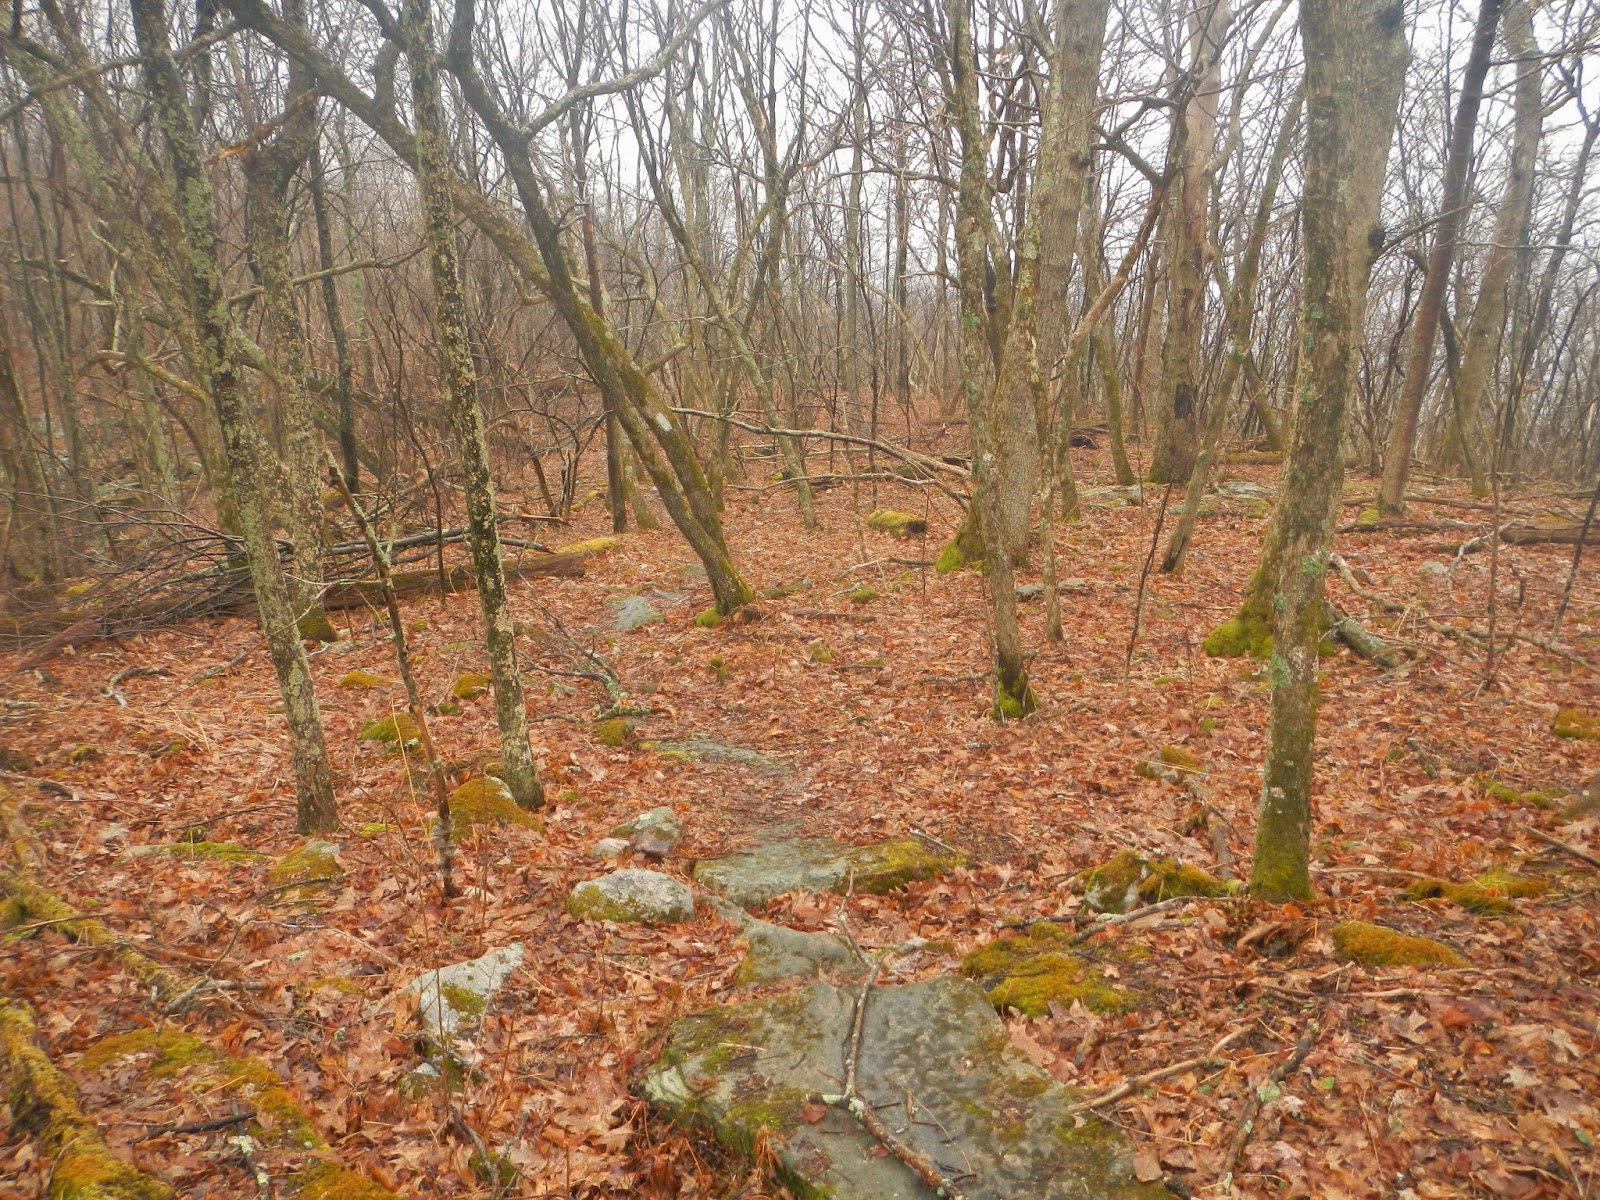 Wandering Virginia: The Appalachian Trail over the New River